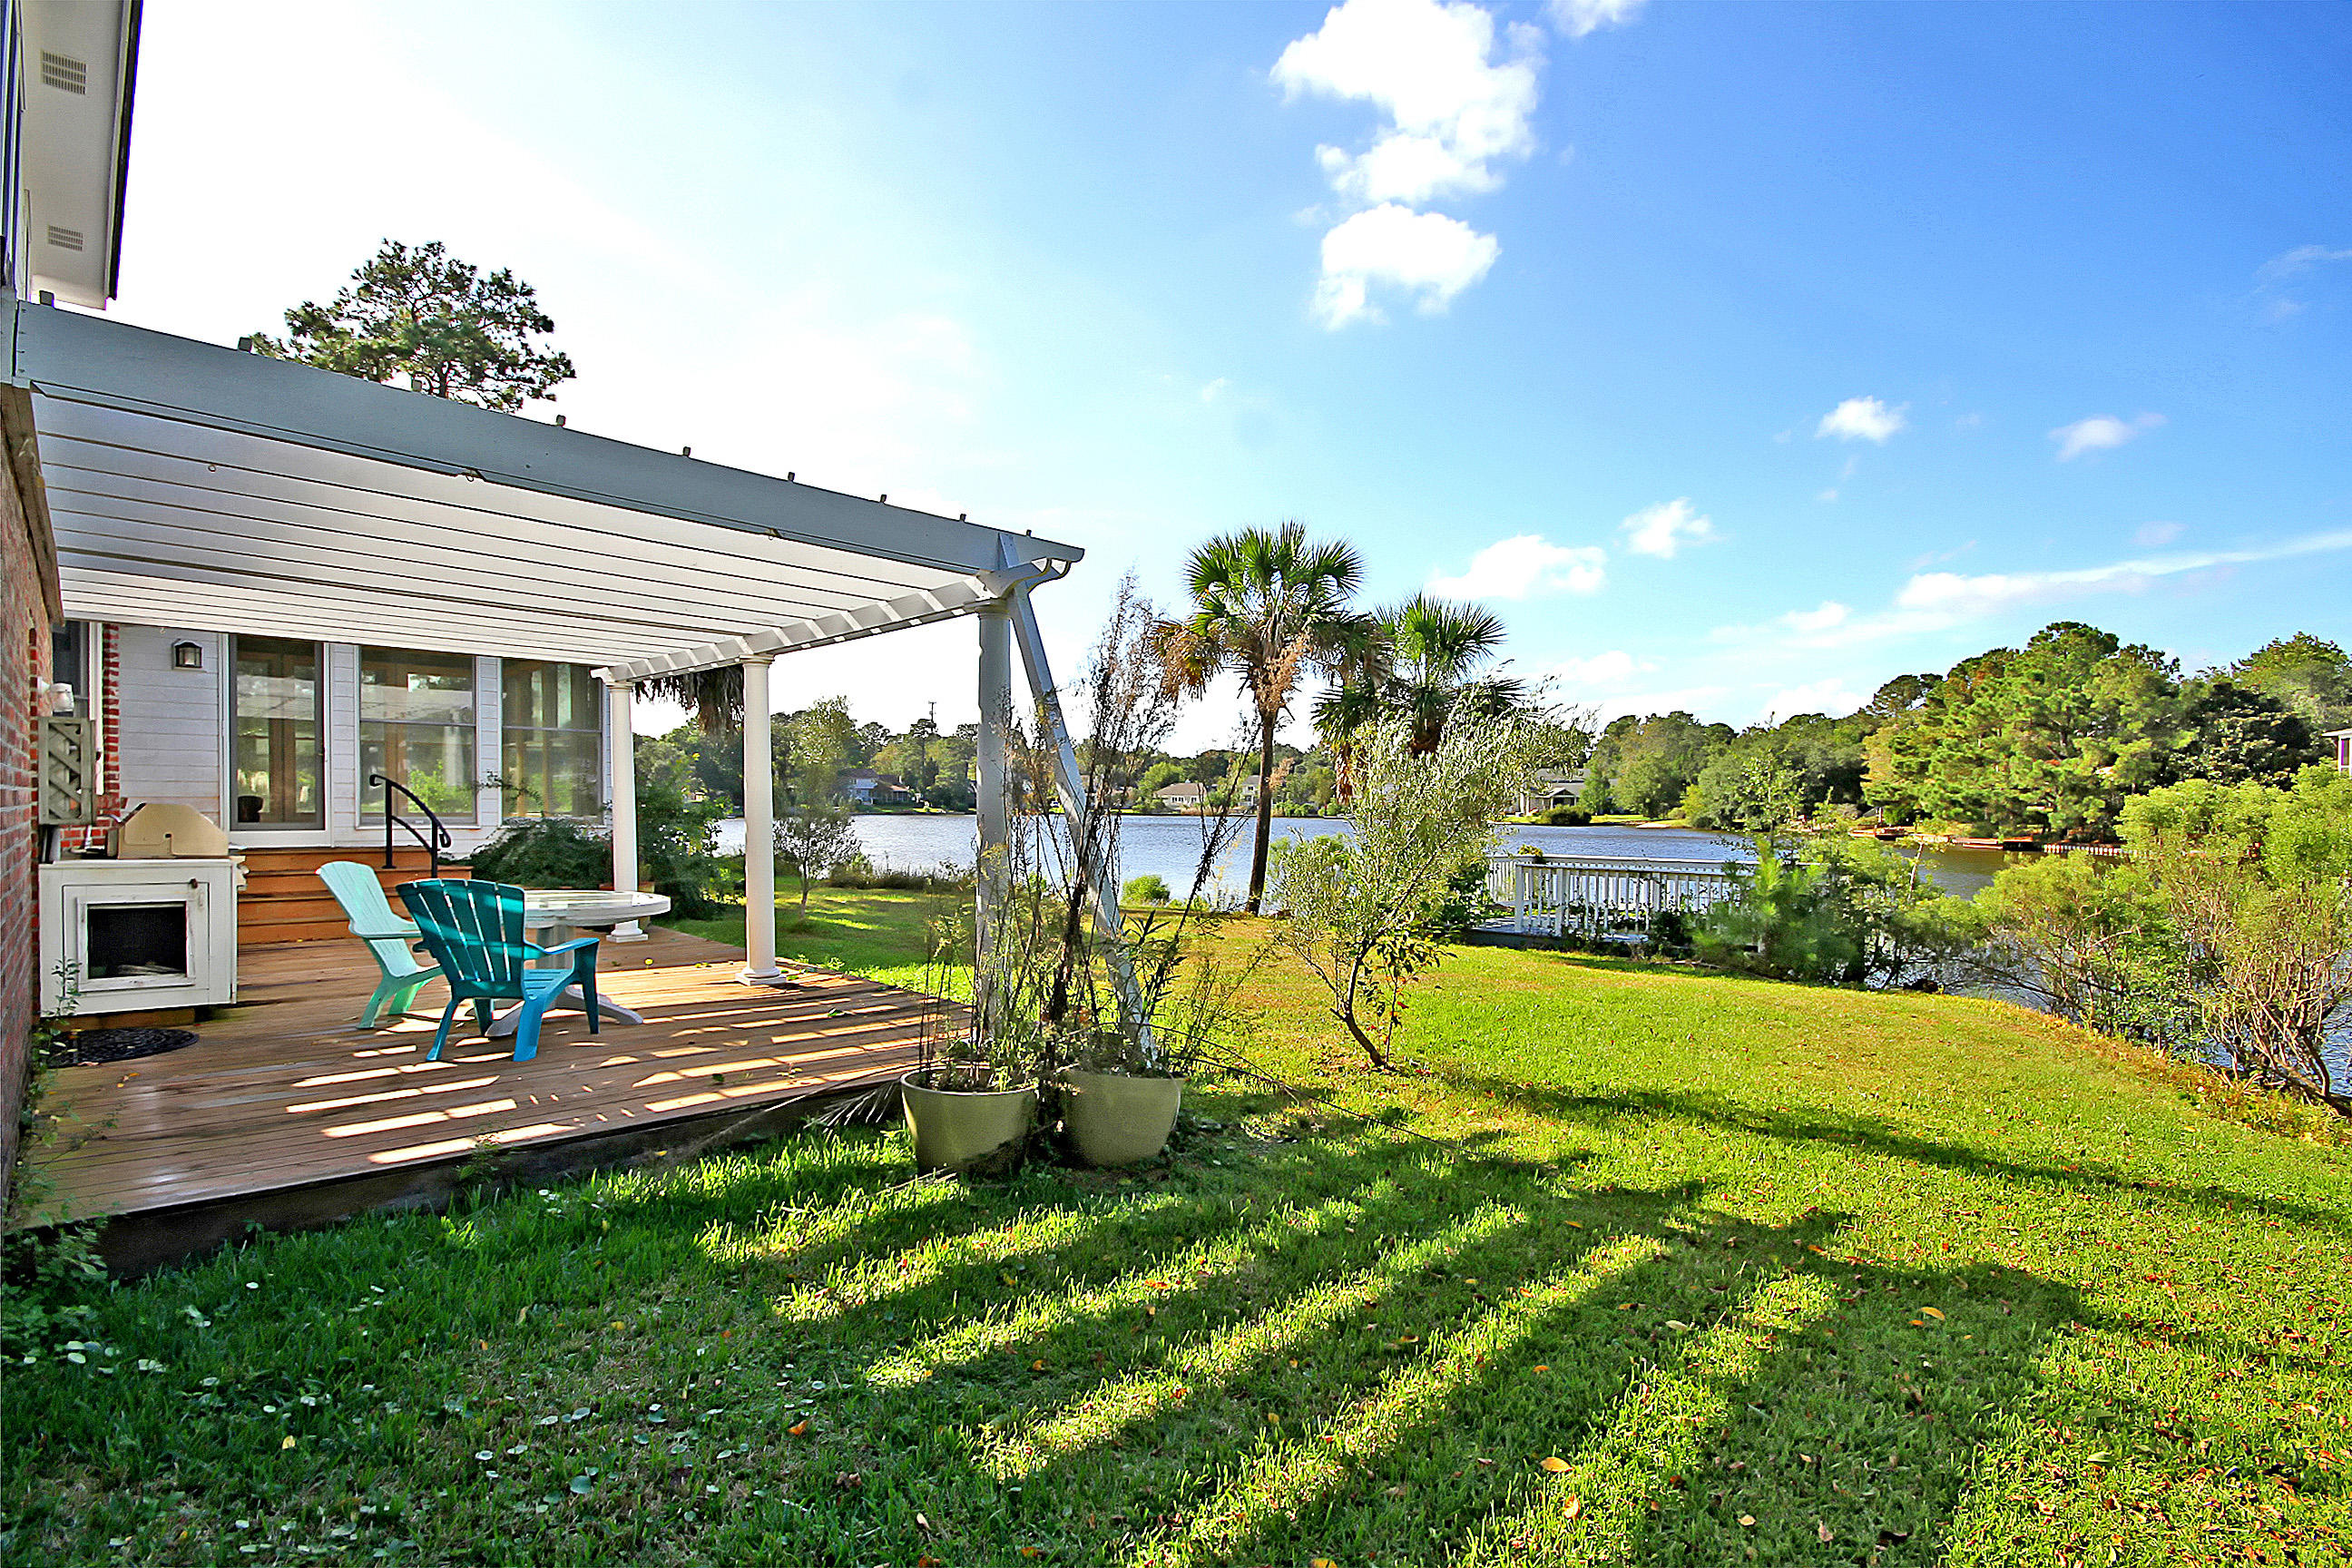 Rivers Point Homes For Sale - 4 Conch, Charleston, SC - 50